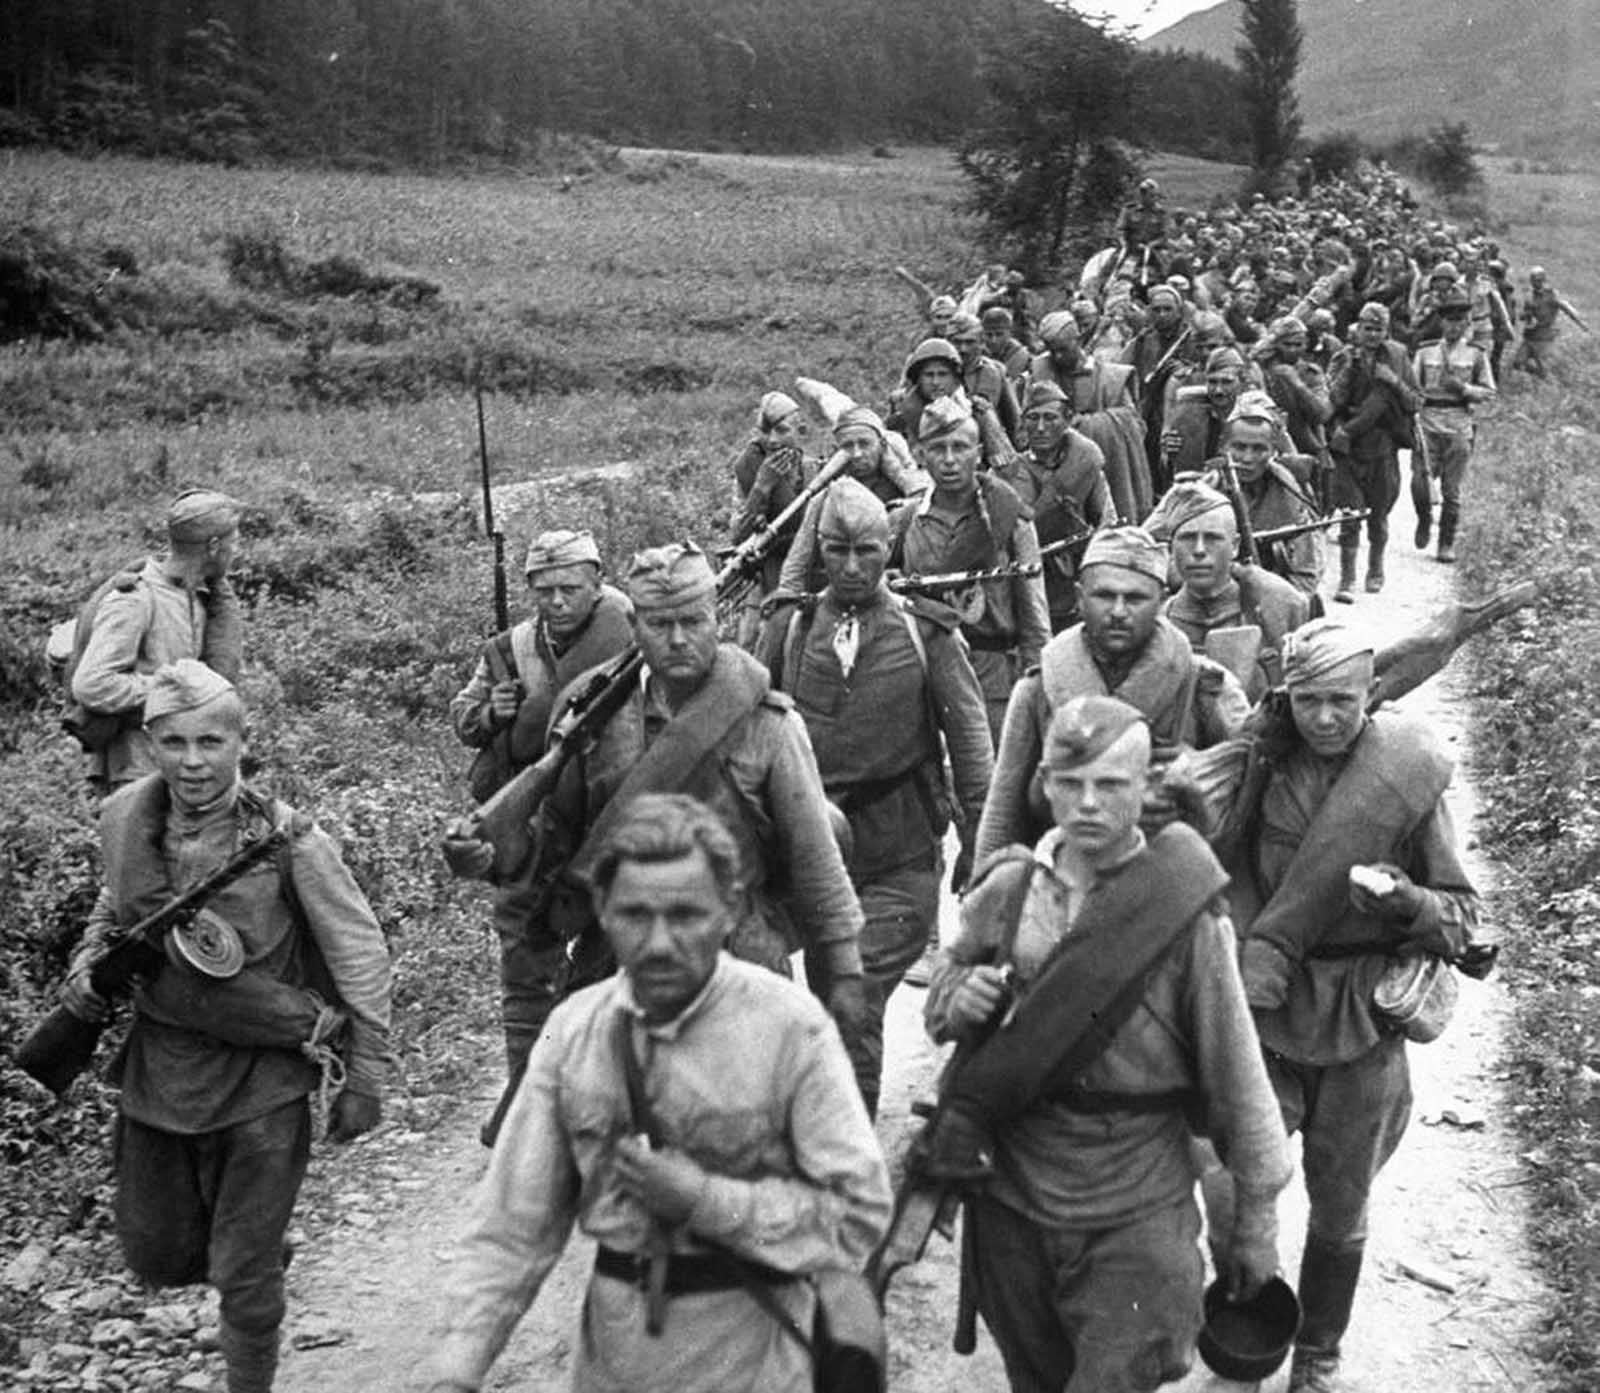 Soviet soldiers on the march in northern Korea in October of 1945. Japan had ruled the Korean peninsula for 35 years, until the end of World War II. At that time, Allied leaders decided to temporarily occupy the country until elections could be held and a government established. Soviet forces occupied the north, while U.S. forces occupied the south. The planned elections did not take place, as the Soviet Union established a communist state in North Korea, and the U.S. set up a pro-western state in South Korea - each state claiming to be sovereign over the entire peninsula. This standoff led to the Korean War in 1950, which ended in 1953 with the signing of an armistice -- but, to this day, the two countries are still technically at war with each other.